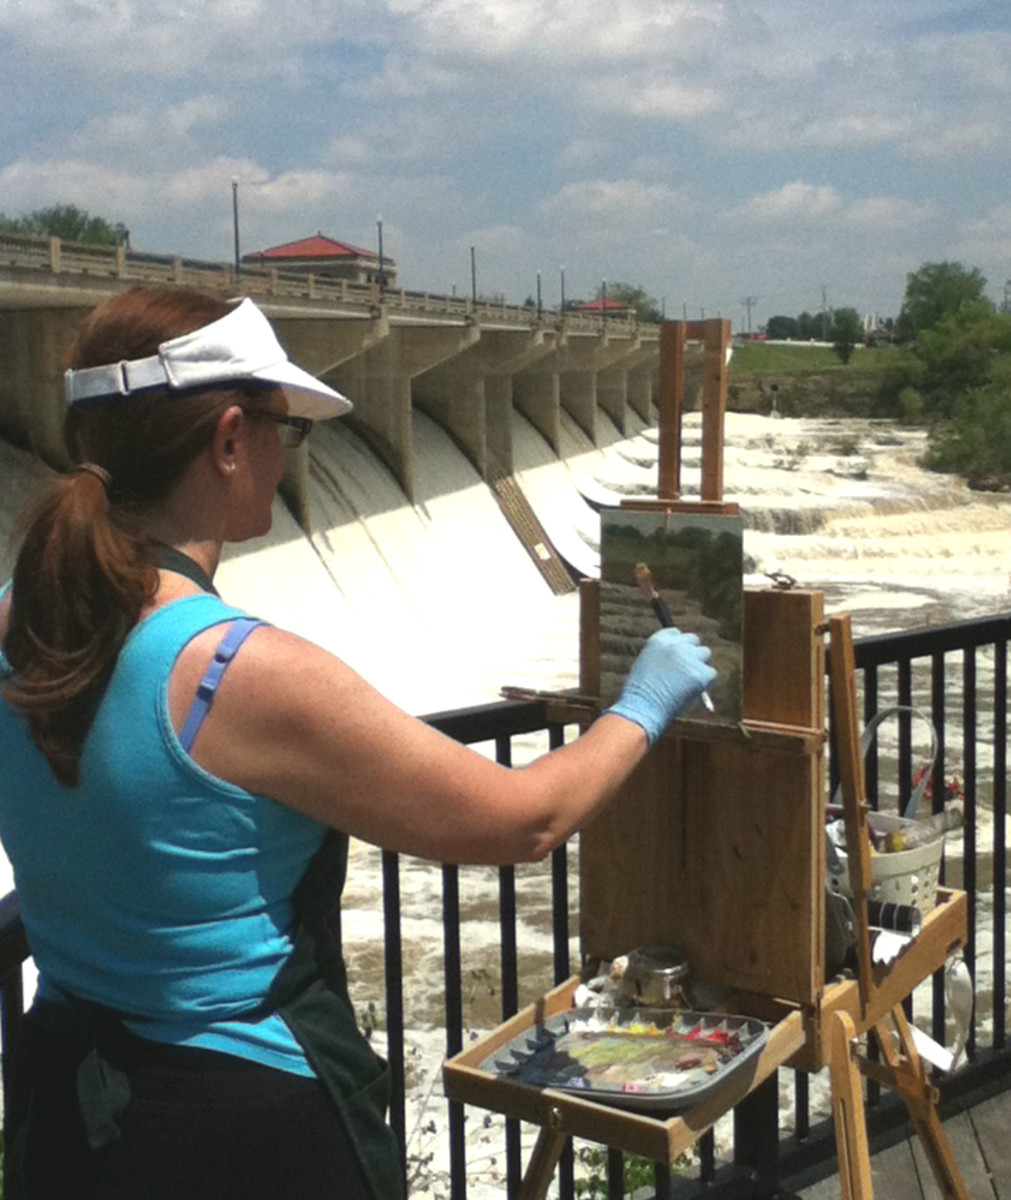 This is me painting outdoors on a very sunny and hot day. Sunscreen and visor were essential that day!